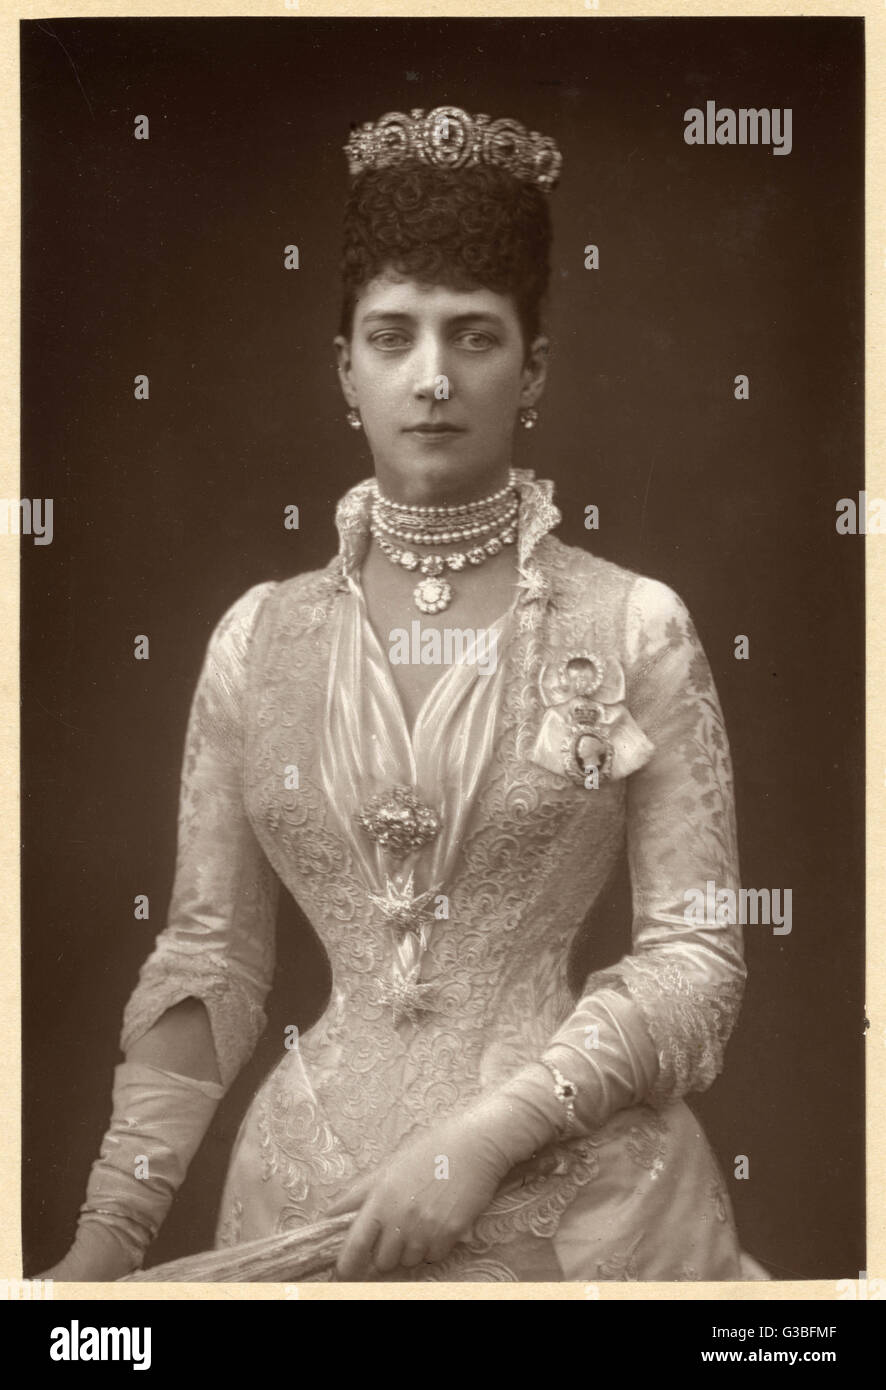 ALEXANDRA QUEEN TO EDWARD VII  Photographed in 1891.        Date: 1844 - 1925 - Stock Image